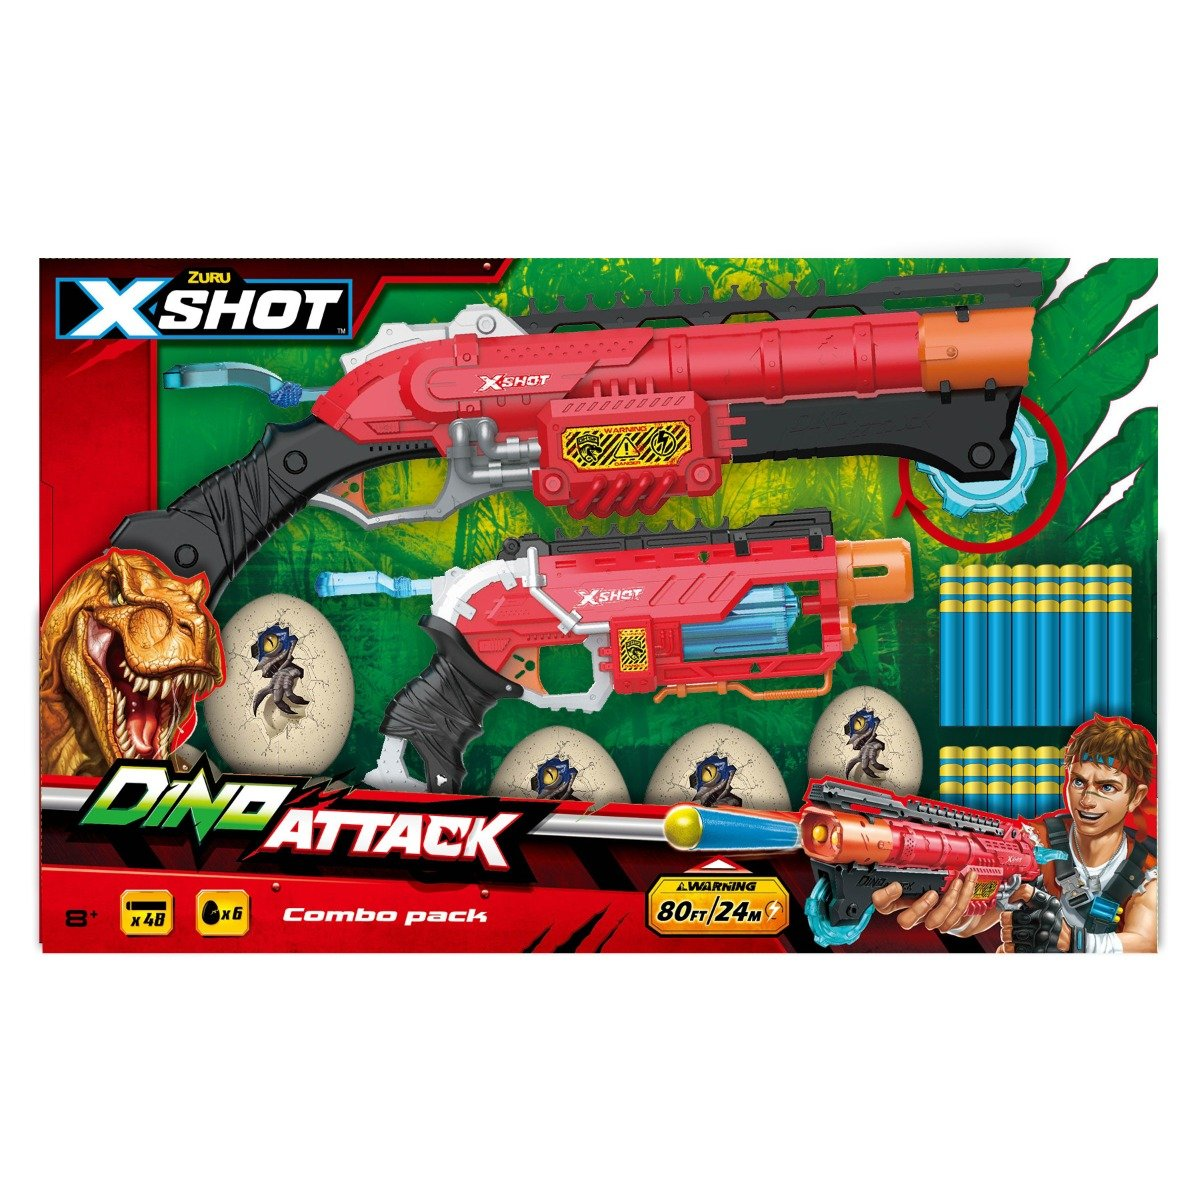 Set Blaster Dino Attack Combo Pack, 48 proiectile